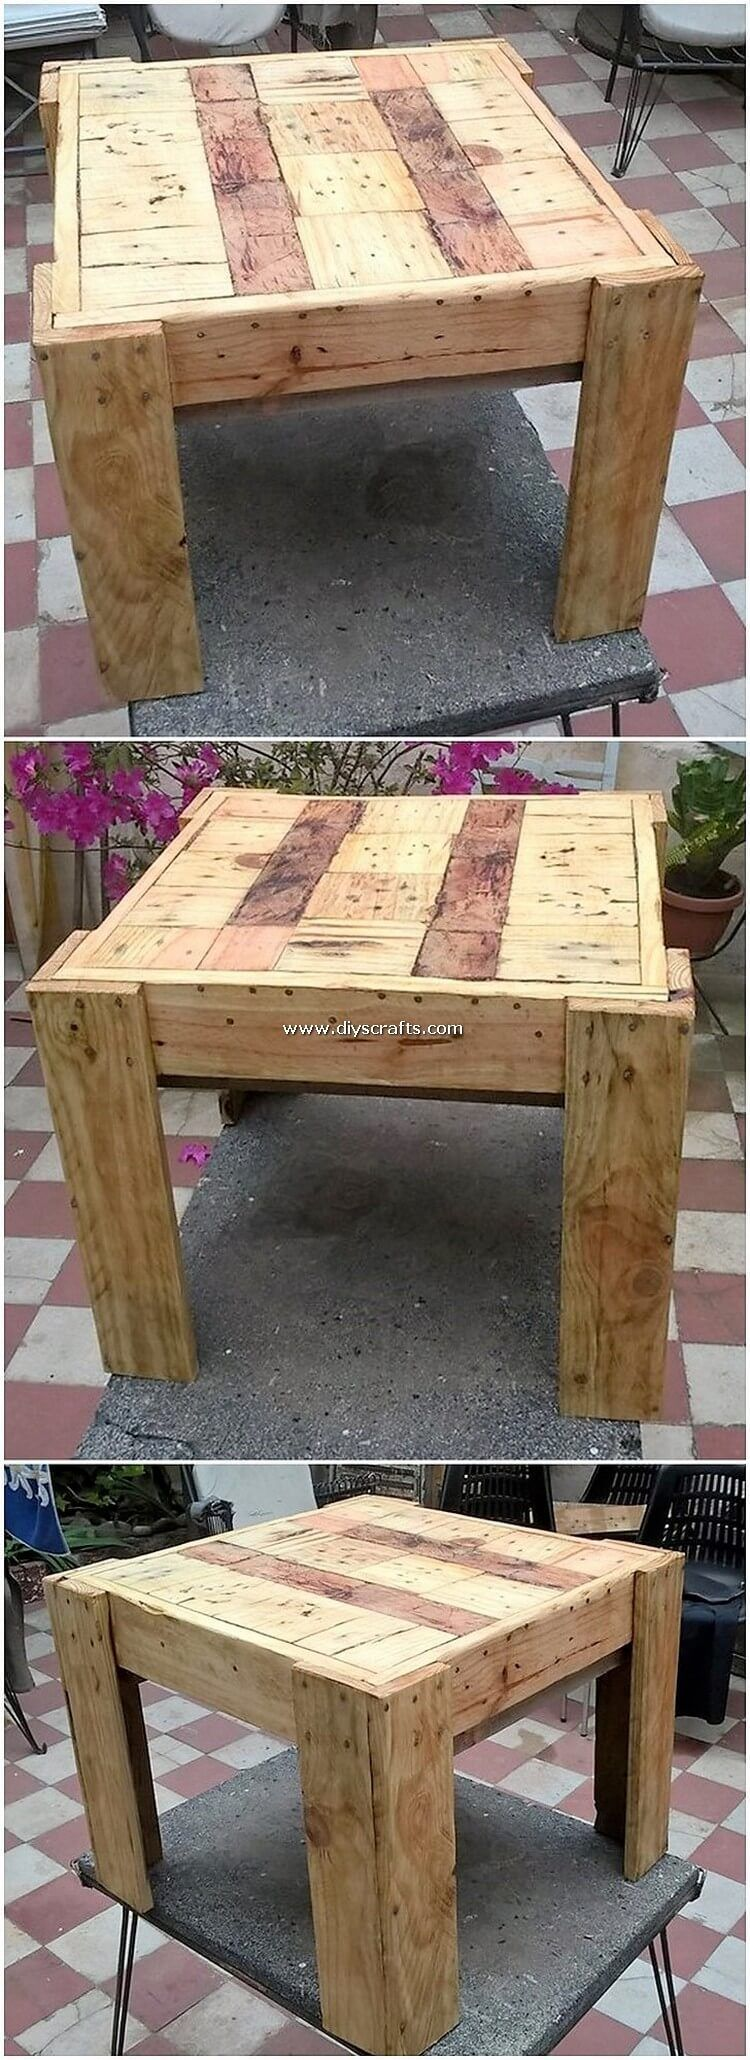 Succeed and Cheap Creations with Old Pallets #oldpalletsforcrafting Pallet Wood Table #oldpalletsforcrafting